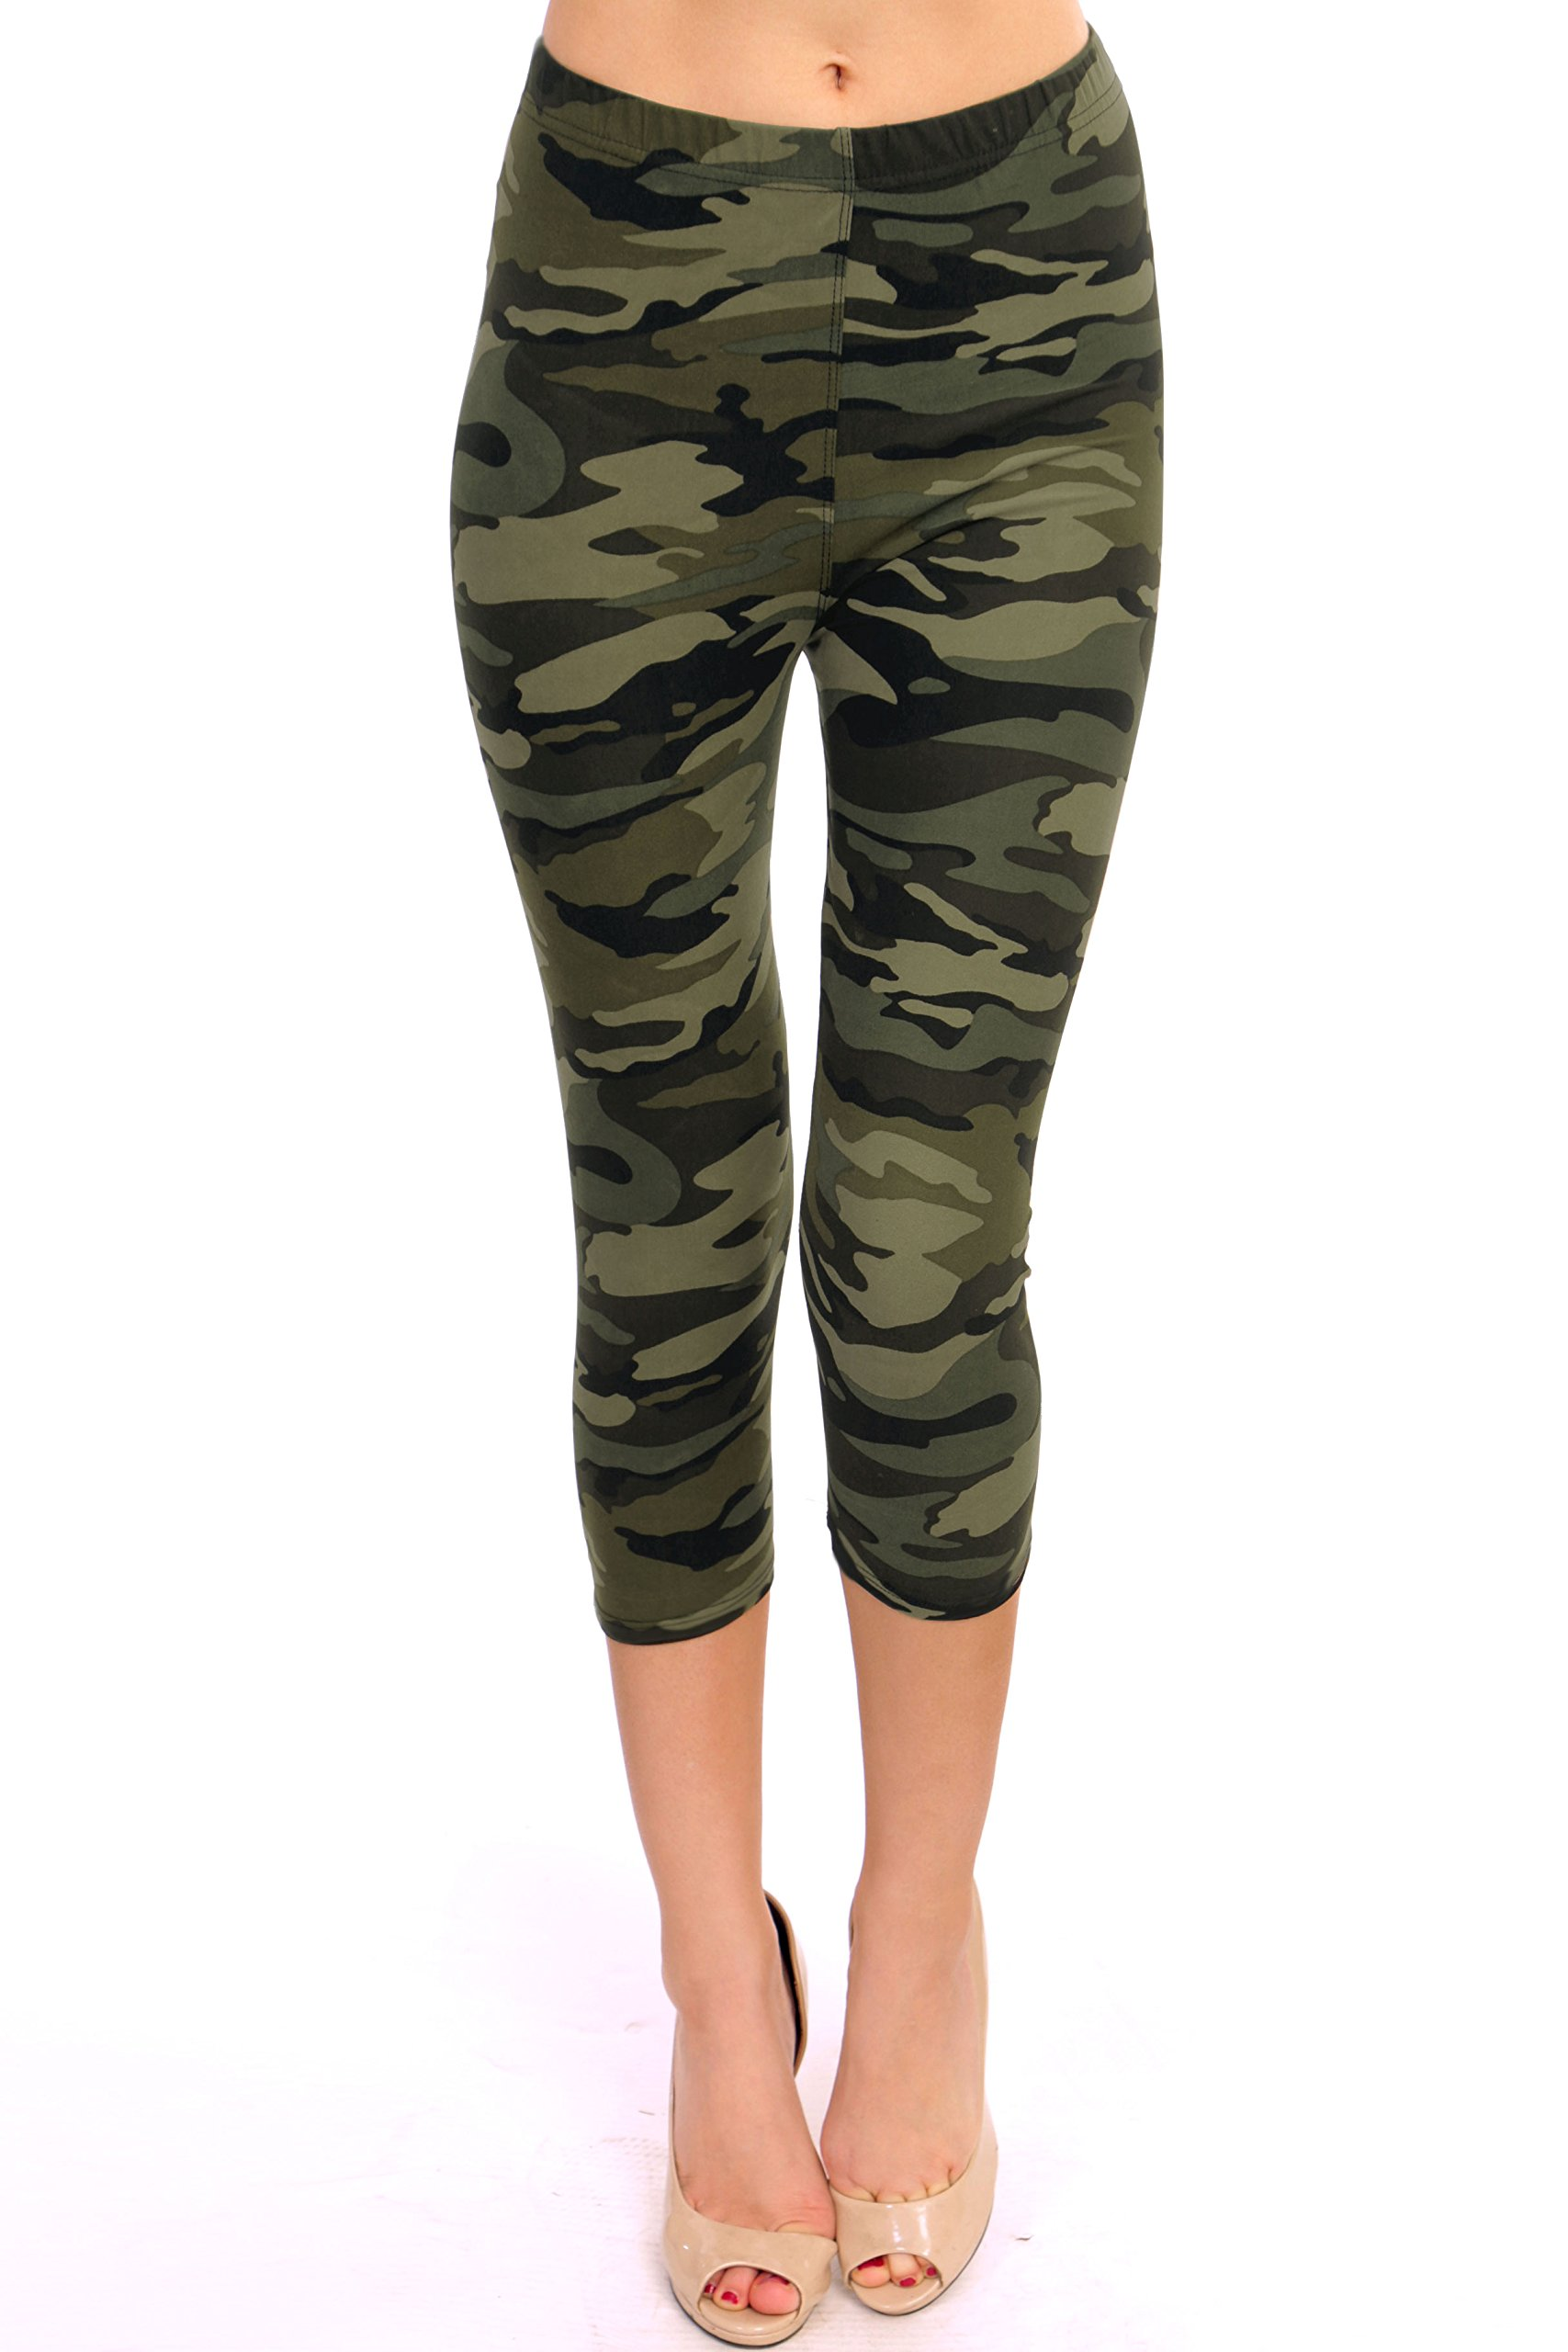 VIV Collection Regular Size Printed Brushed Capris (Green Army Camouflage)